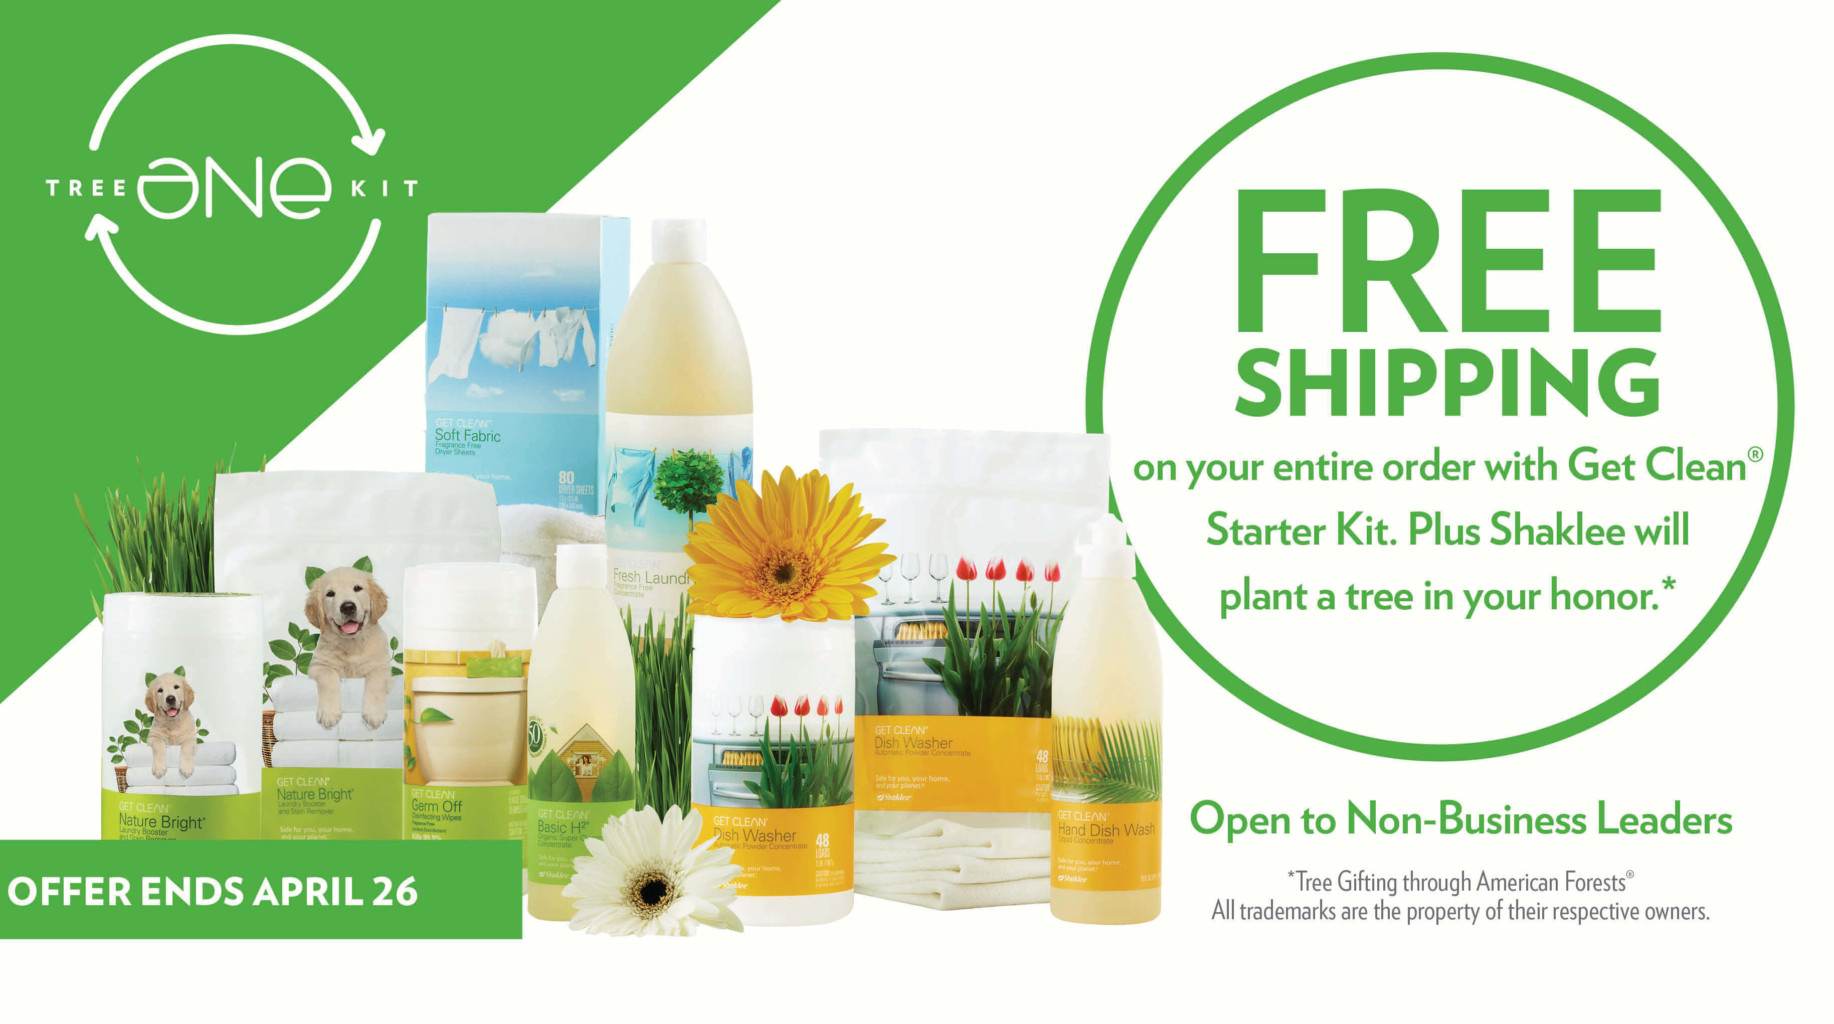 Free Shipping with the Purchase of a Get Clean Starter Kit